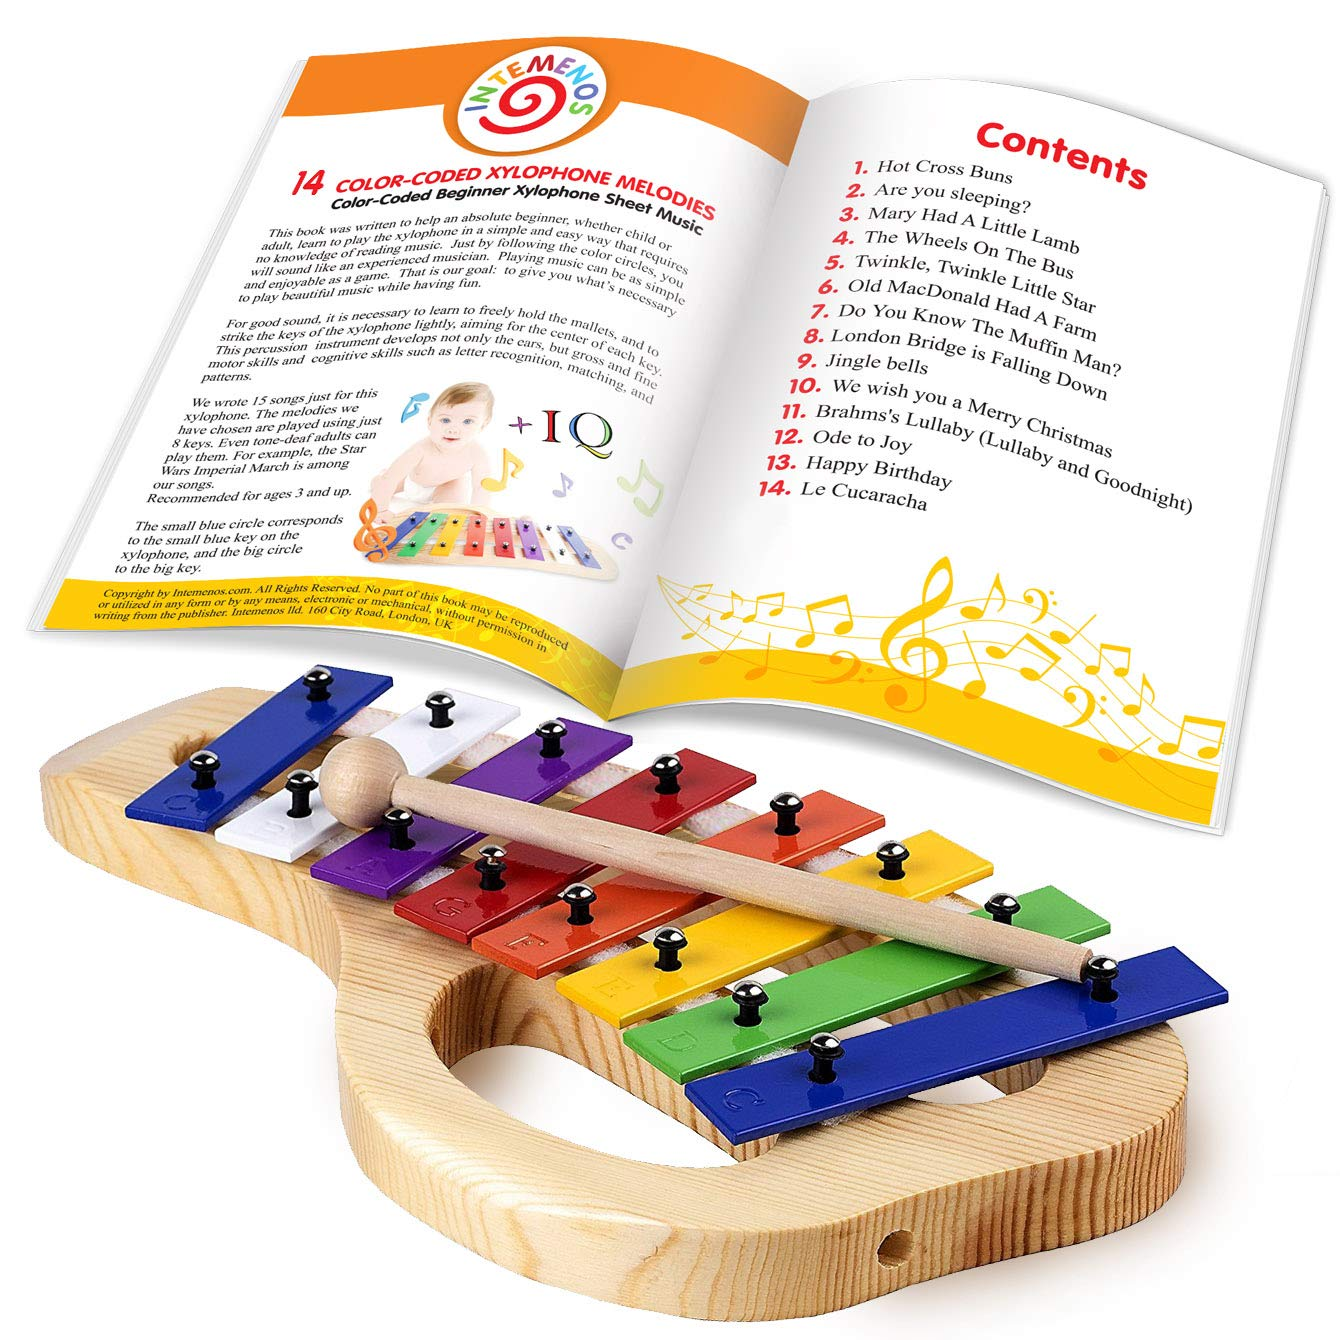 Xylophone for Children - 15 Color-Coded Song Sheet Music E